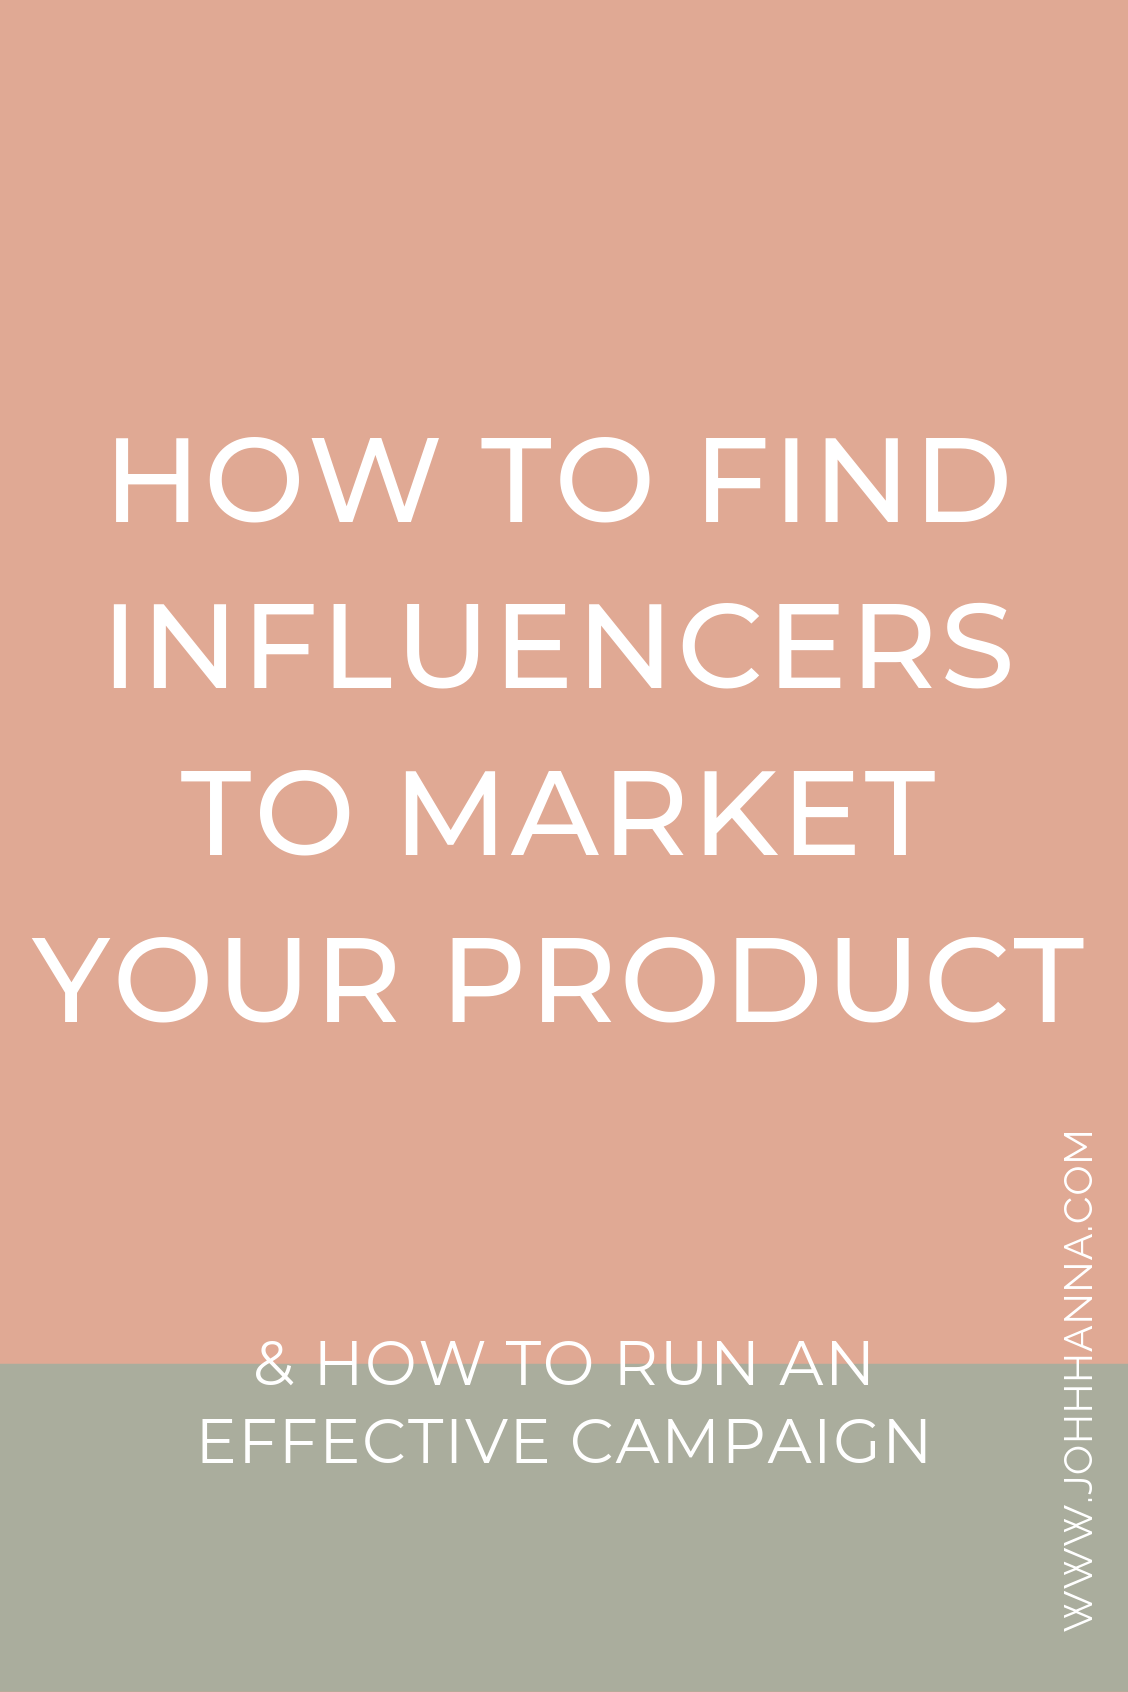 influencer-marketing-how-to-find-influencers.png